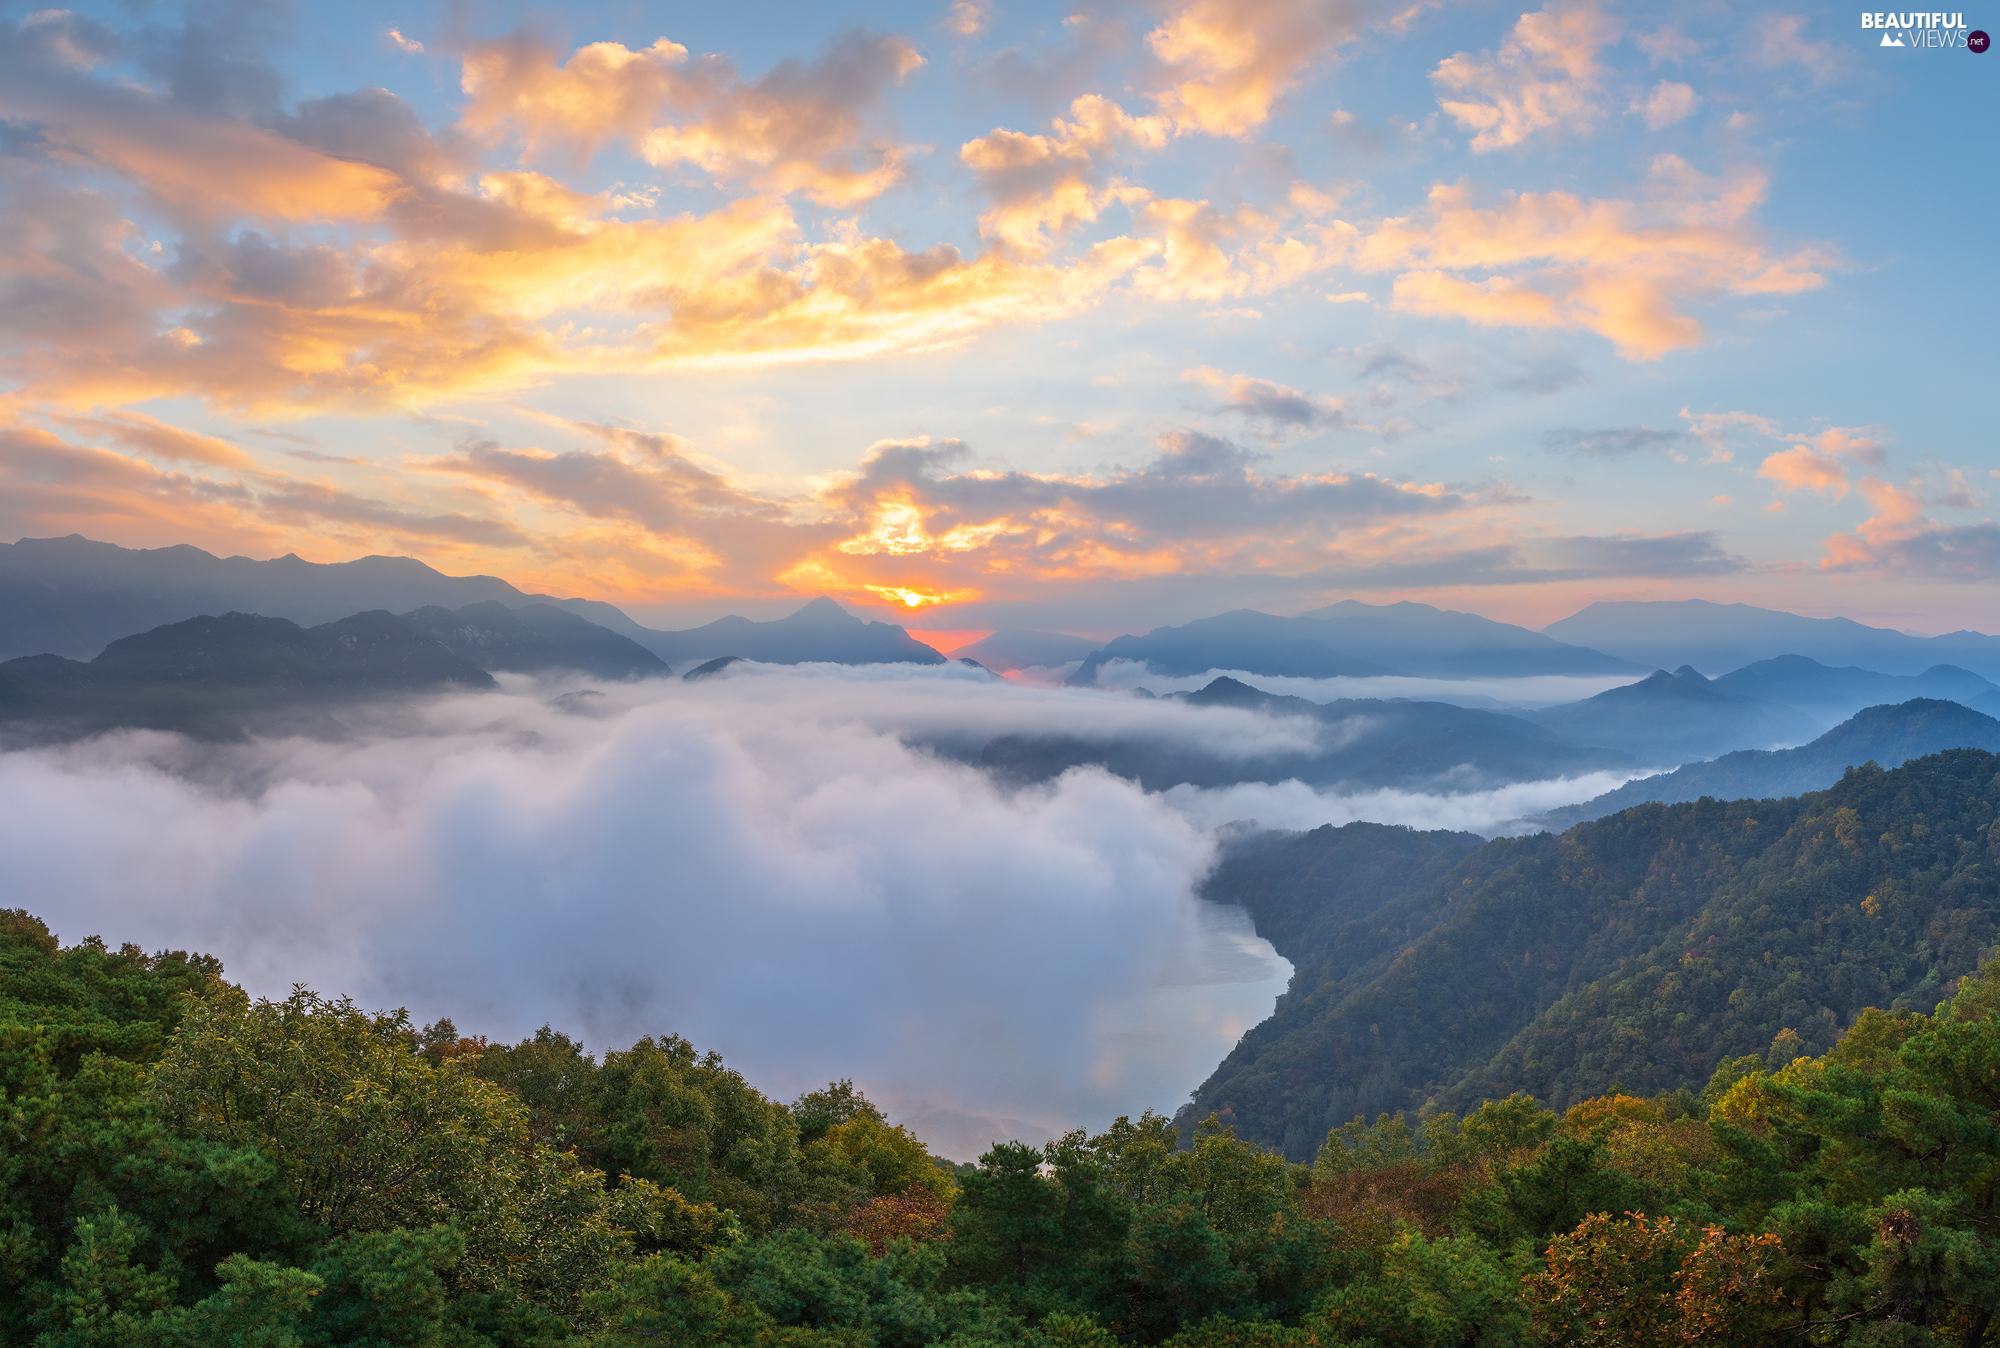 viewes, Fog, Sunrise, trees, Mountains, VEGETATION, clouds